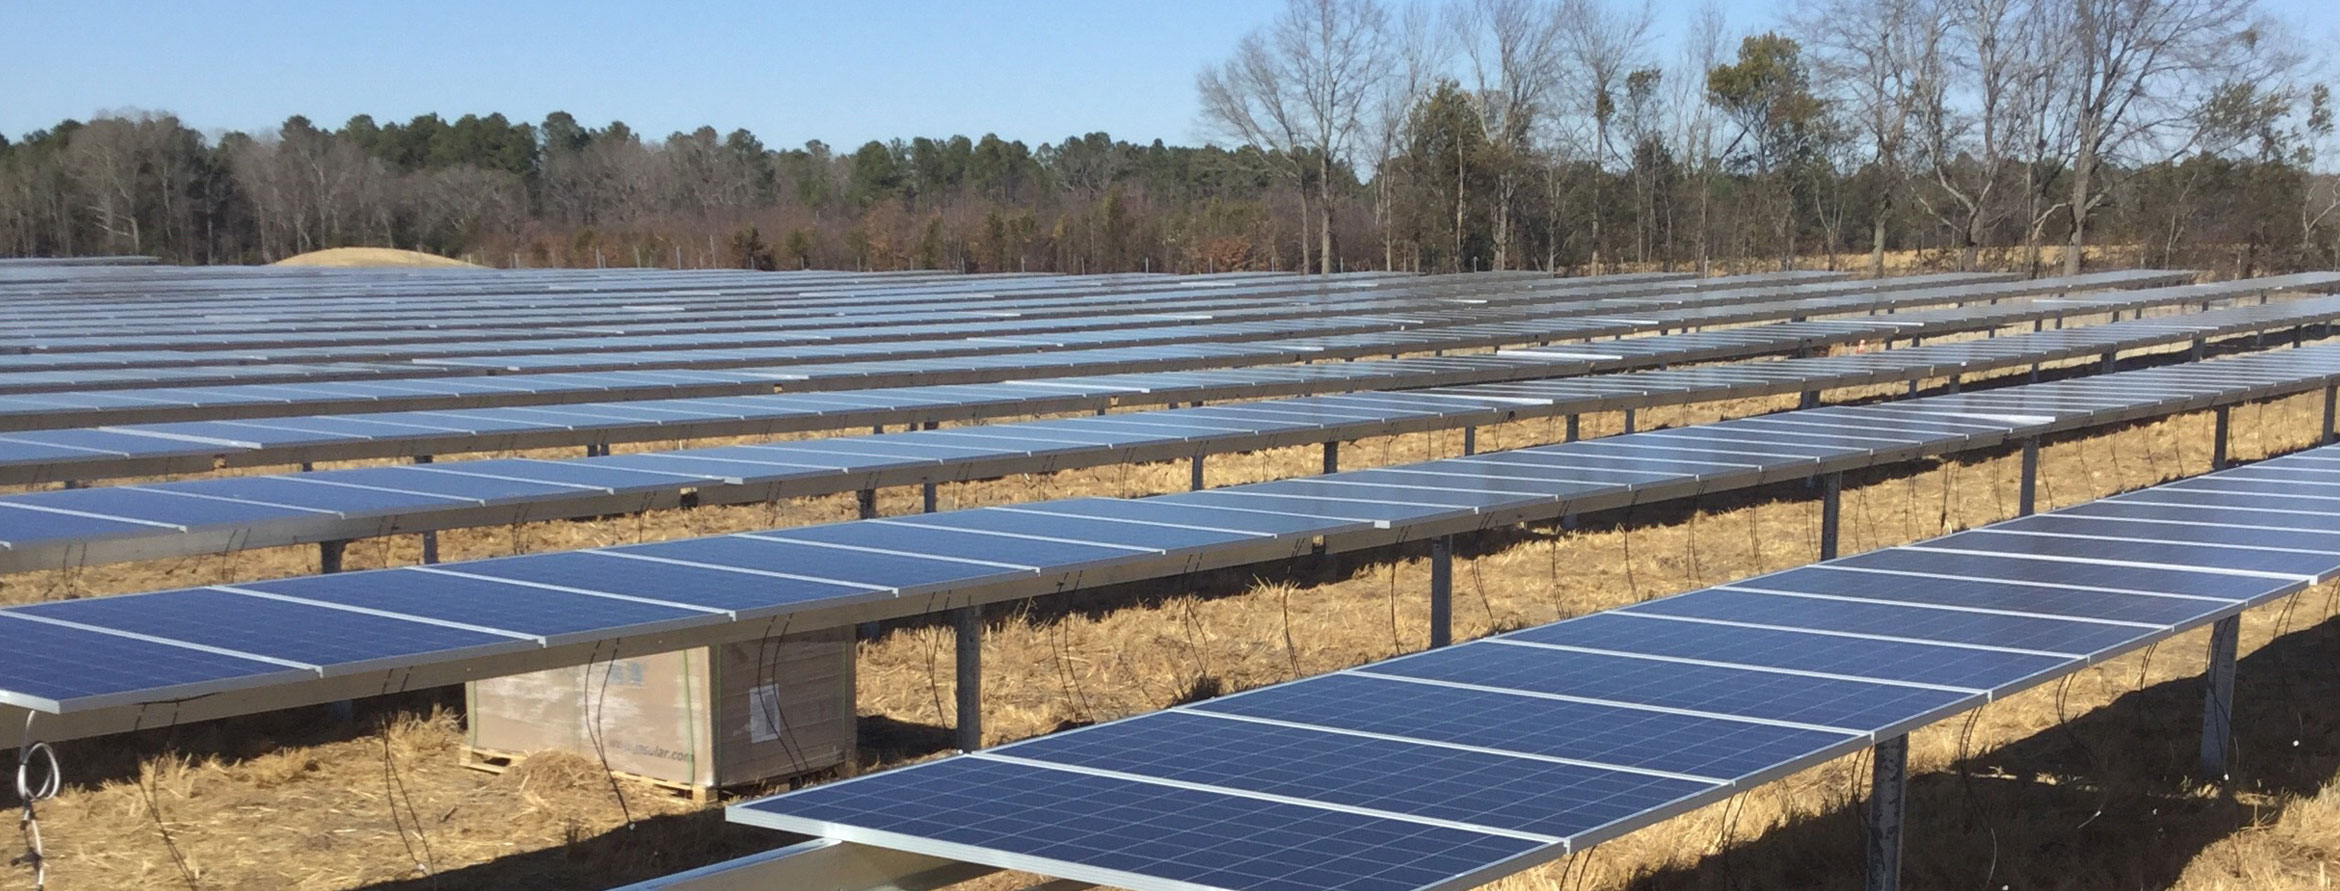 Gaston-Solar-Farm-South-Carolina-H.jpg